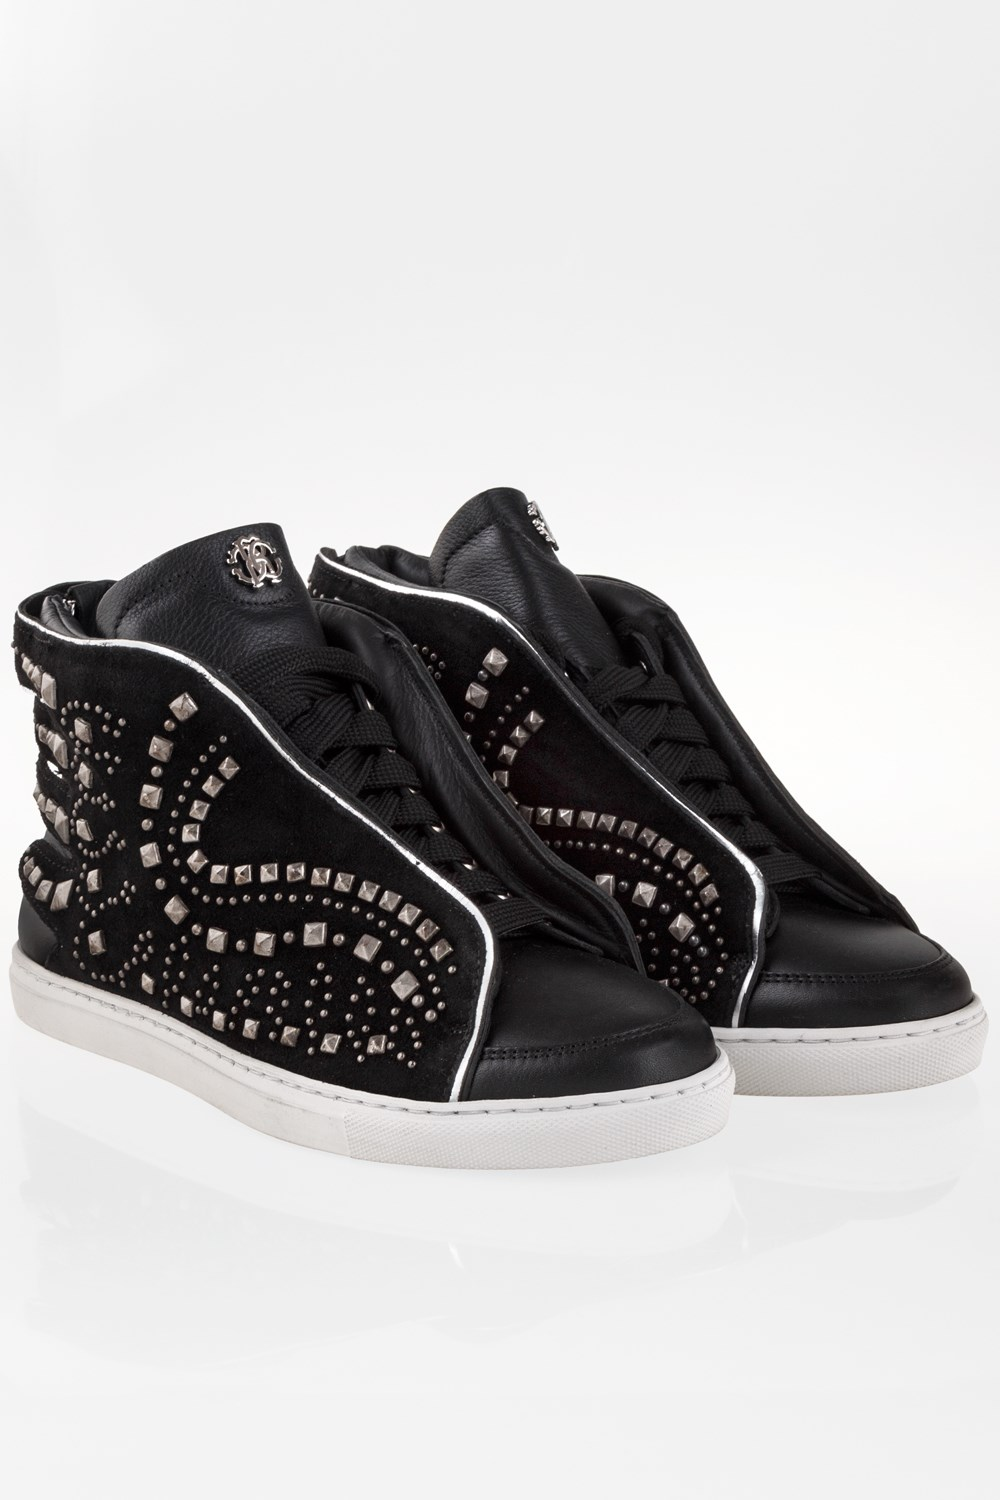 fa92edcd4e65bd Black Suede High Top Sneakers with Studs   Size  39 - Fit  True to ...